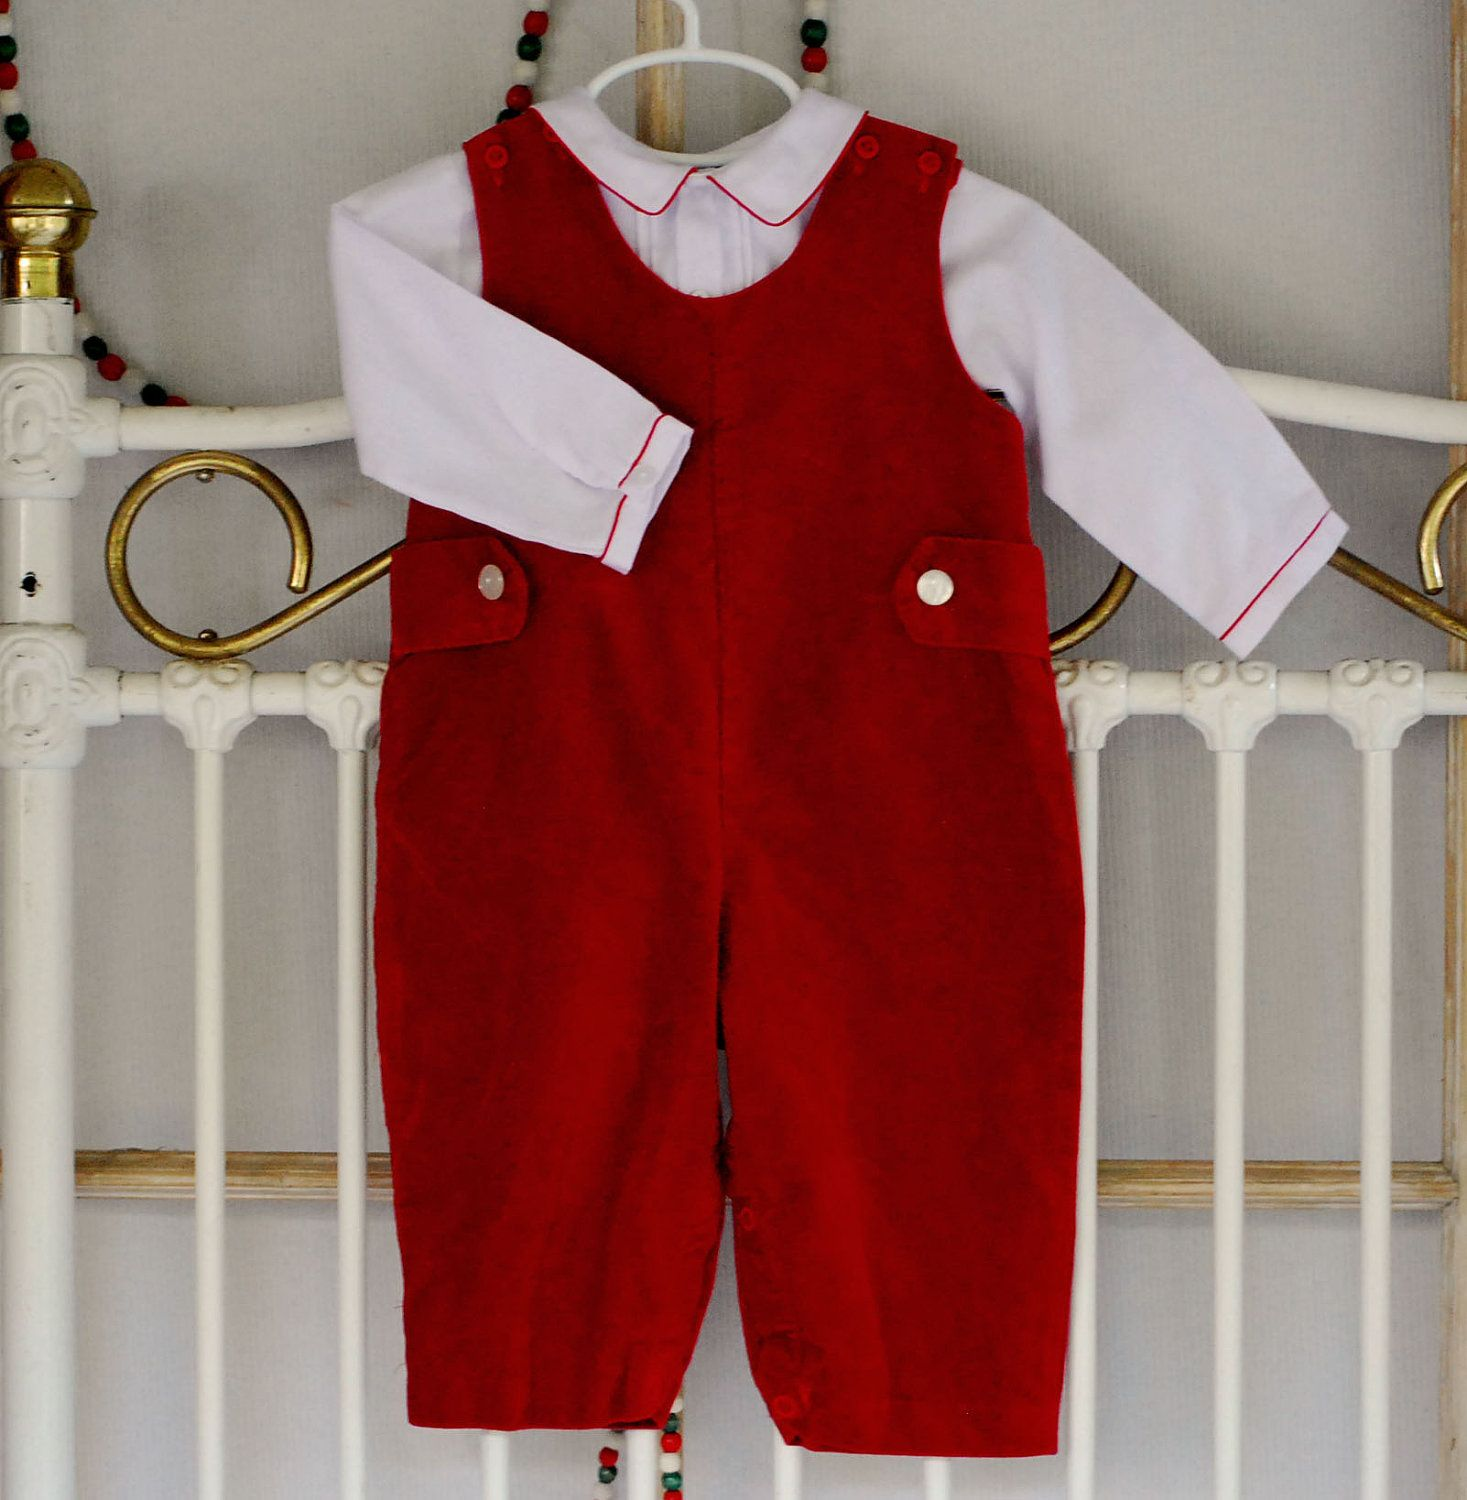 Red Velvet Christmas Outfit For Baby Boy Size 9 Month